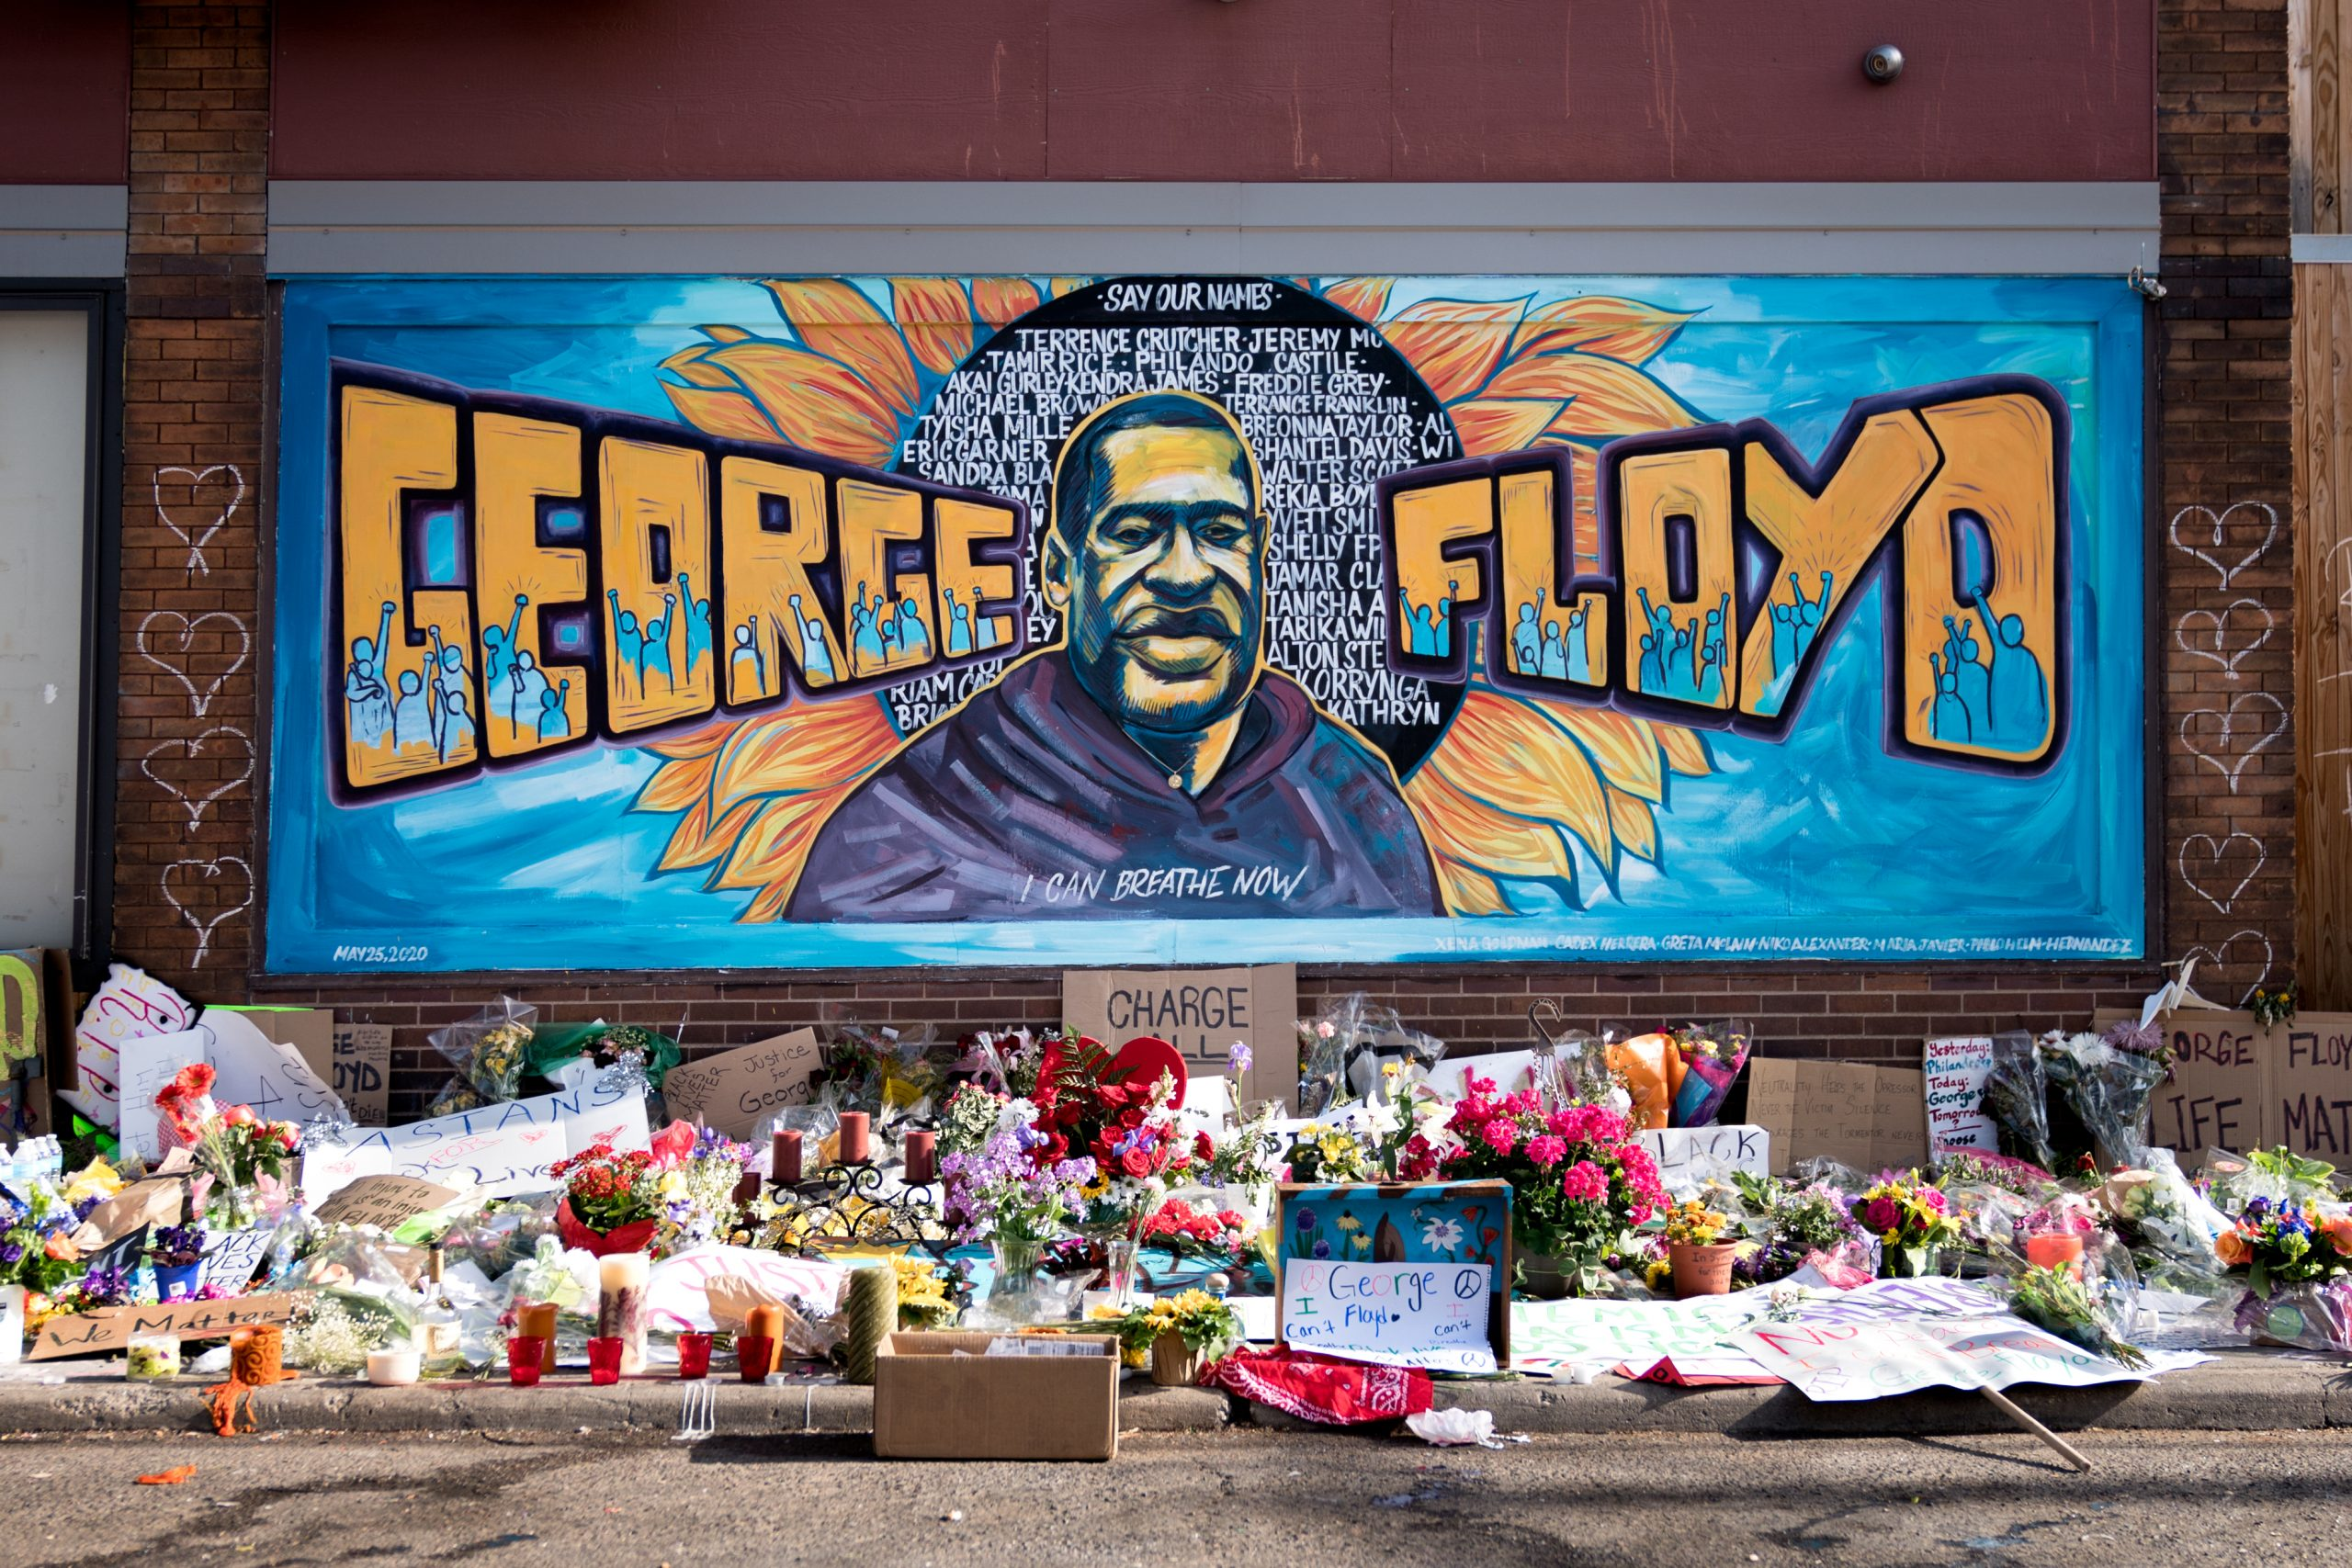 Mural for George Floyd at 38th/Chicago, photo credit: Lorie Shaull